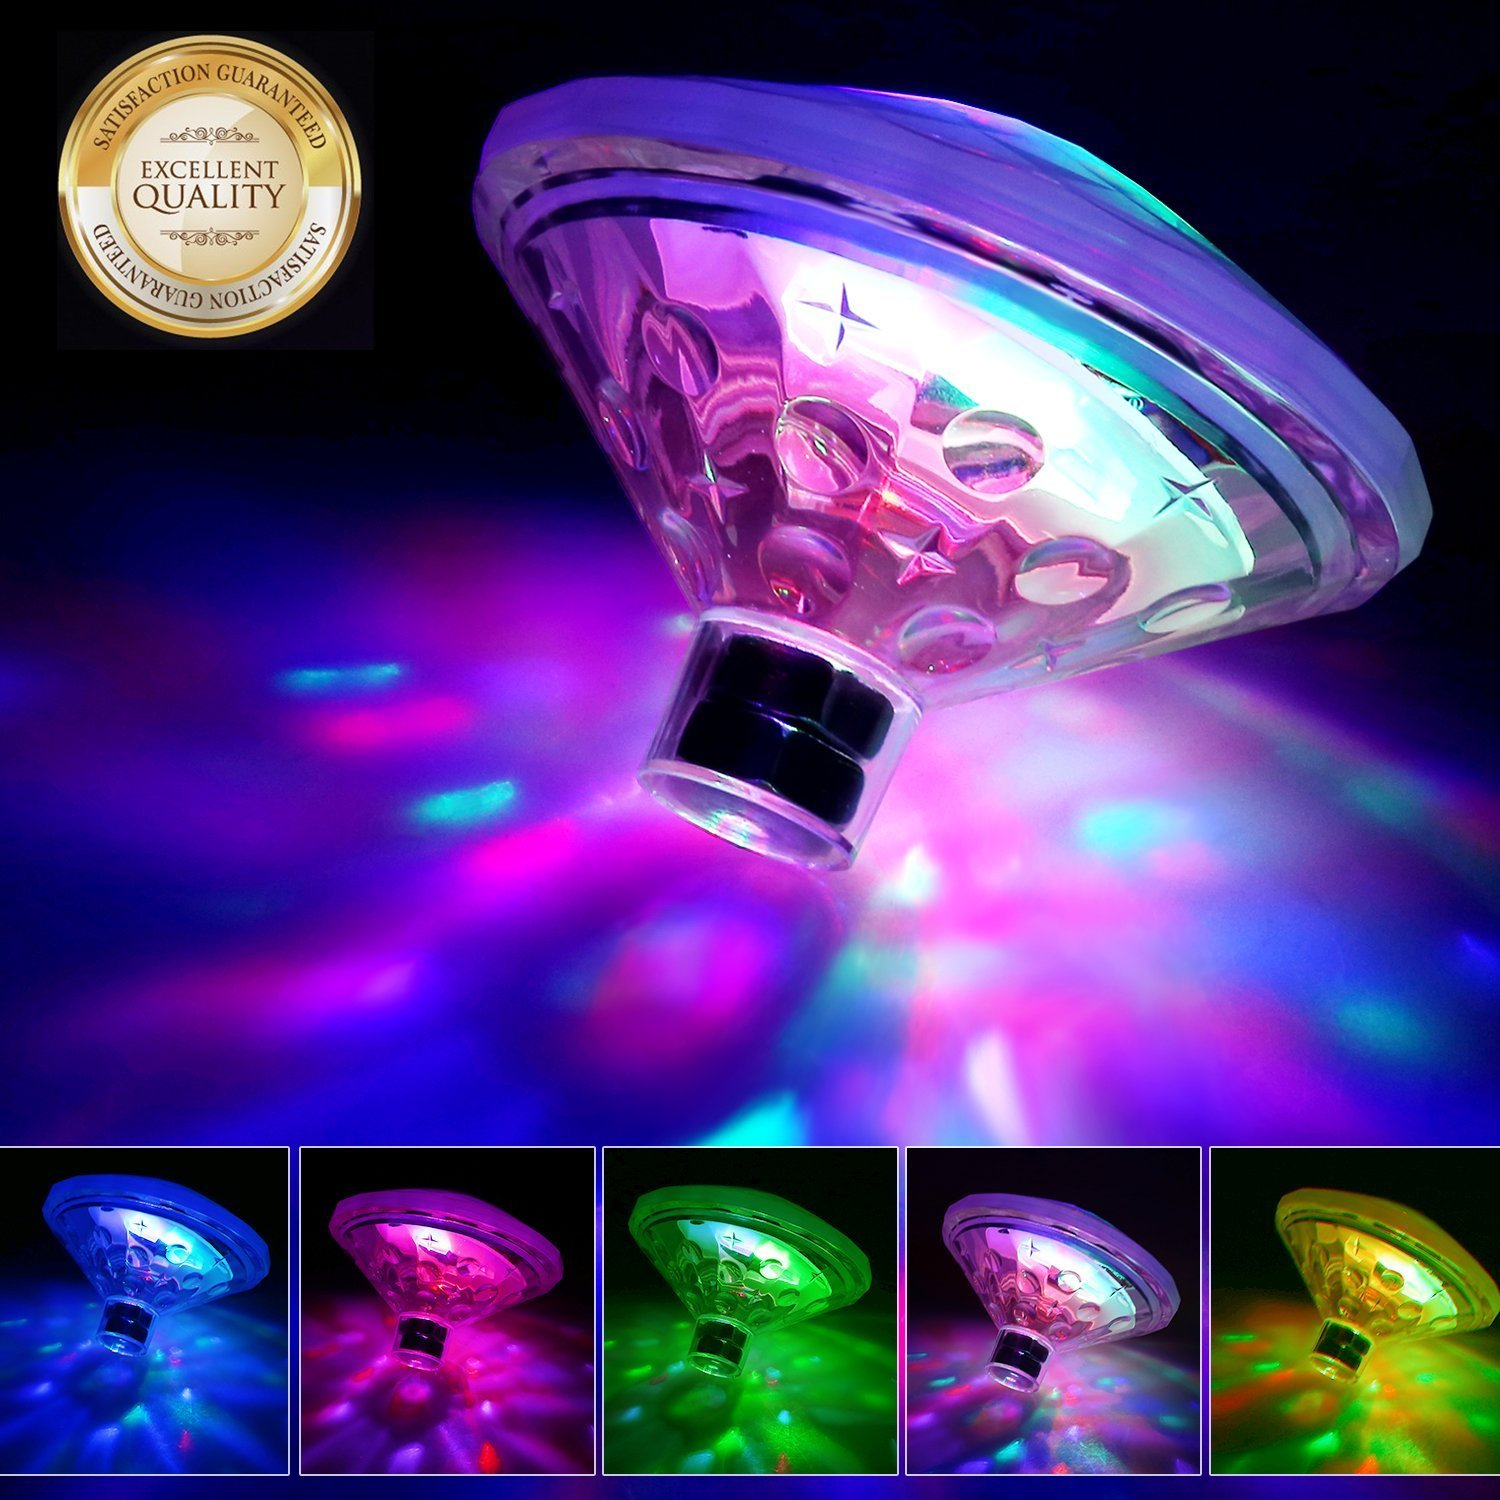 Ailiebhaus Whirlpool Pool Lighting Led Underwater Light Floating Lights Bathtub light with 5 different light shows